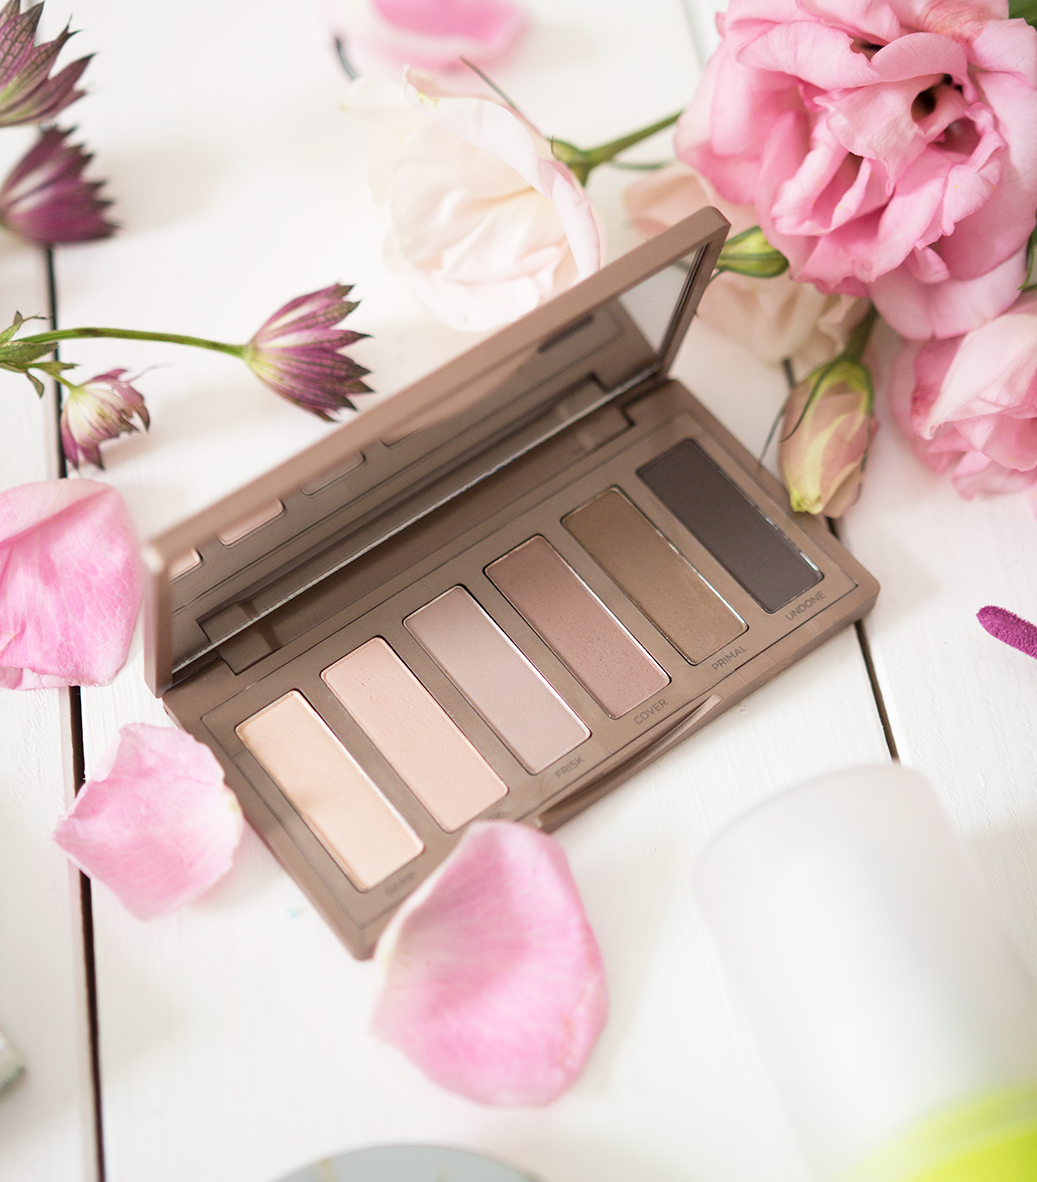 urban decay naked 2 basics palette review and swatches